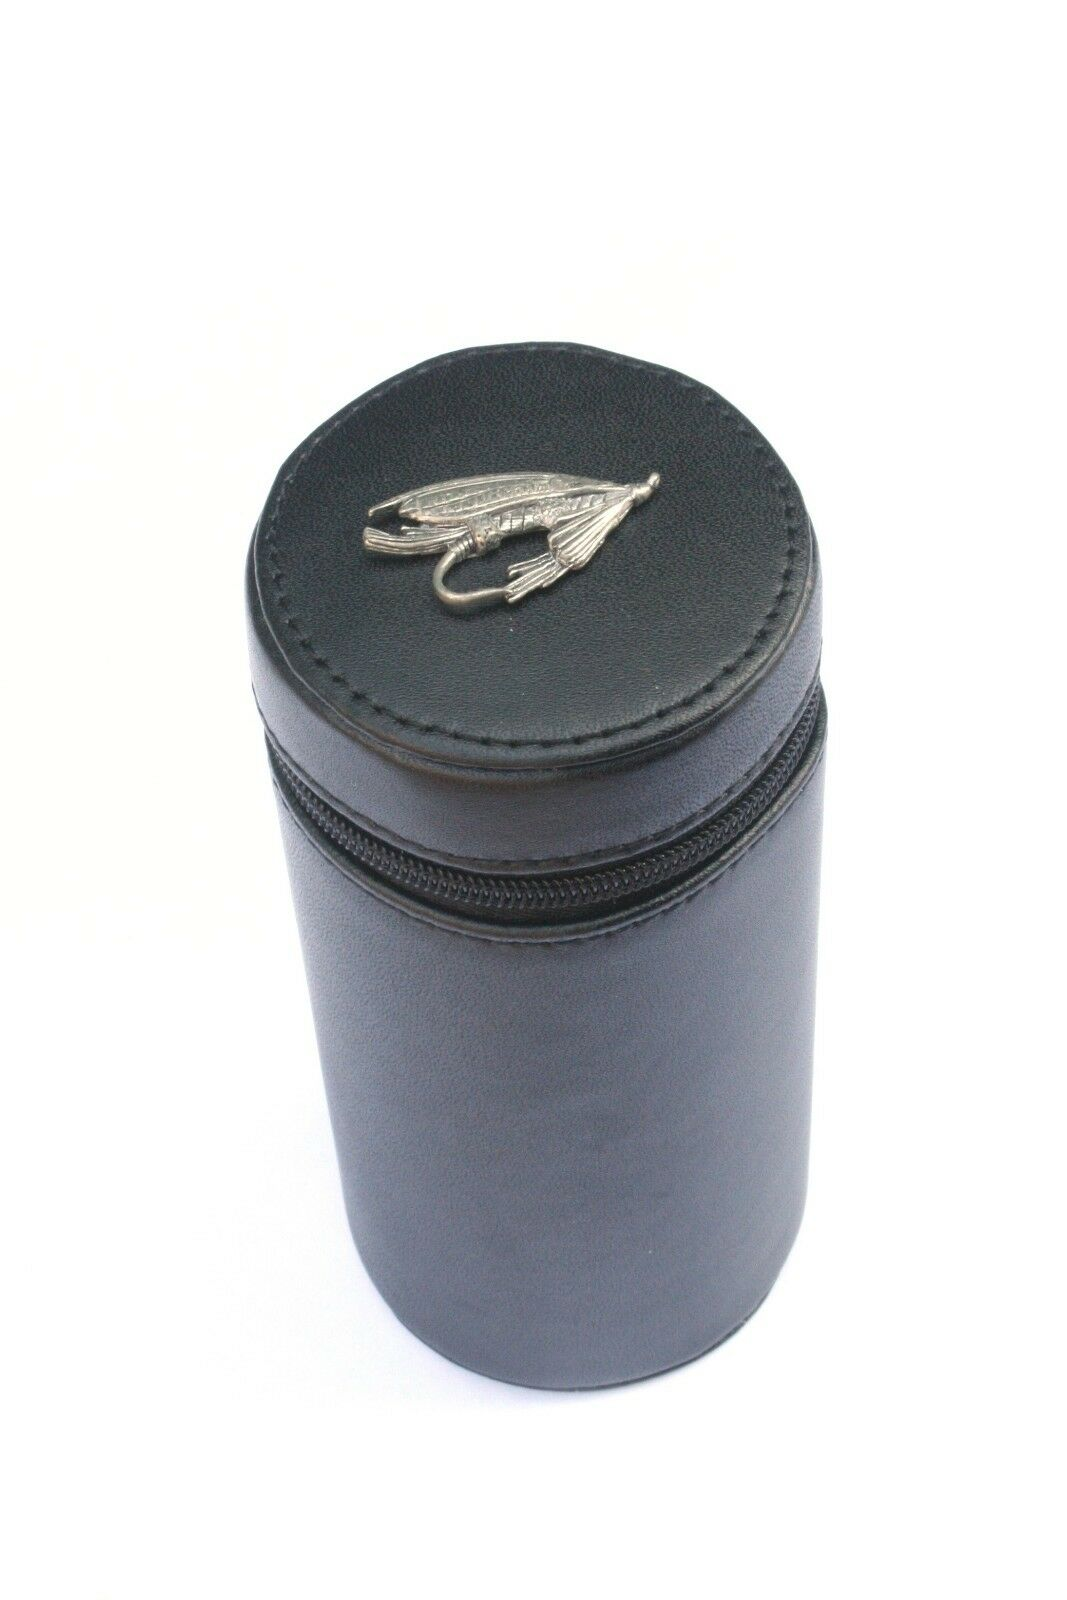 Fishing Fly Shooting Peg Position Finder Numberot Cups 1-10 Leather Case 130